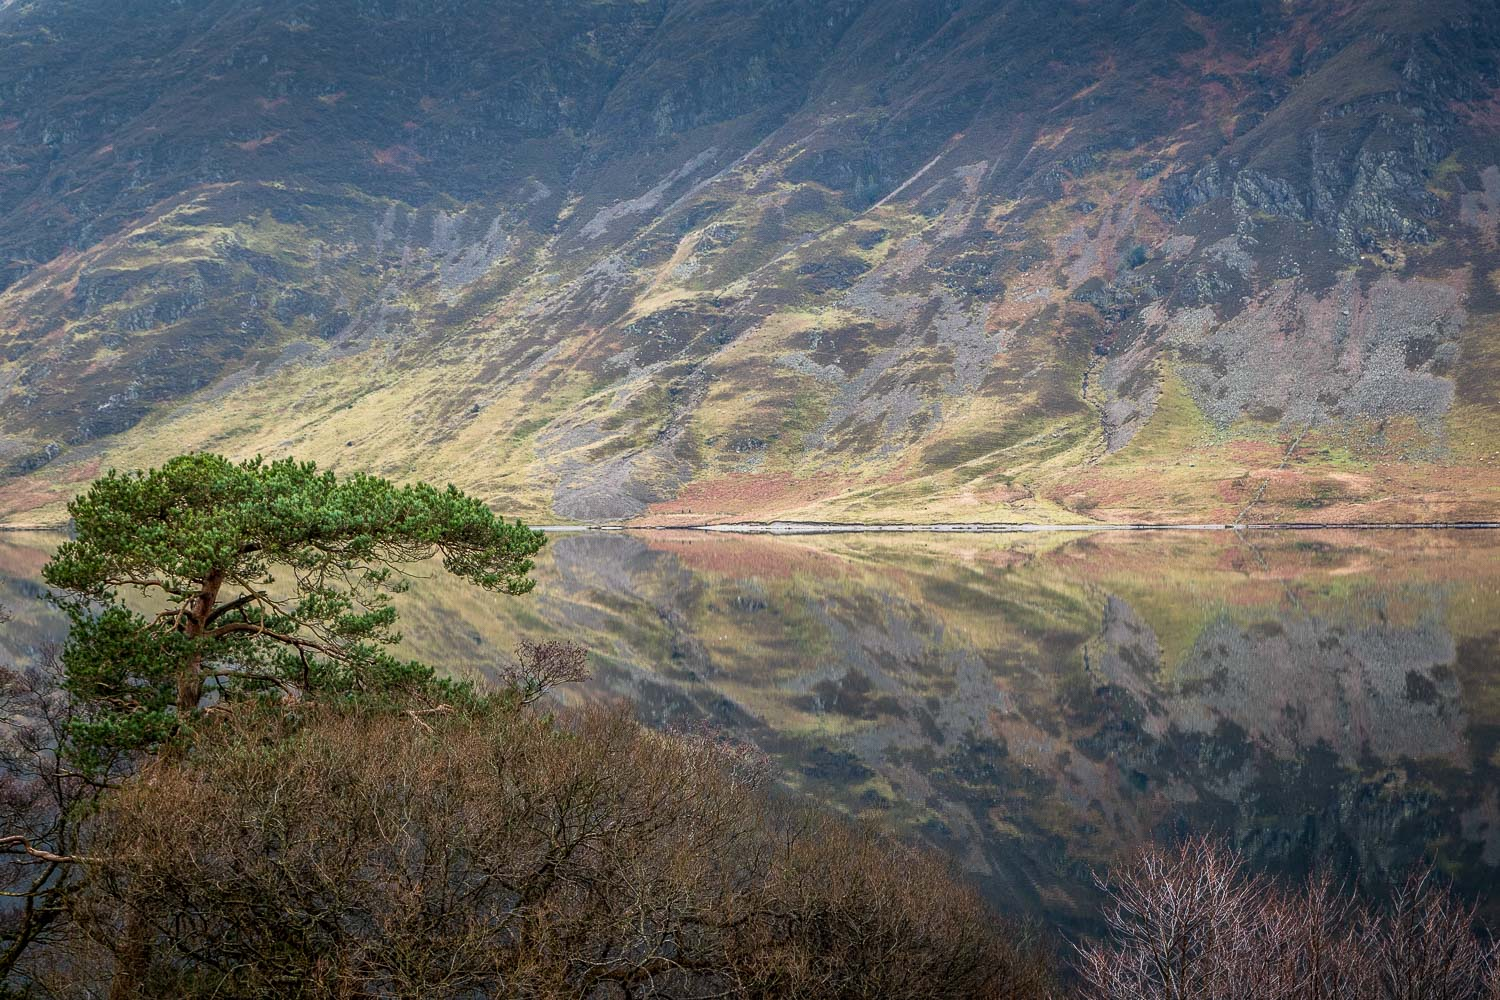 Reflections in Crummock Wate